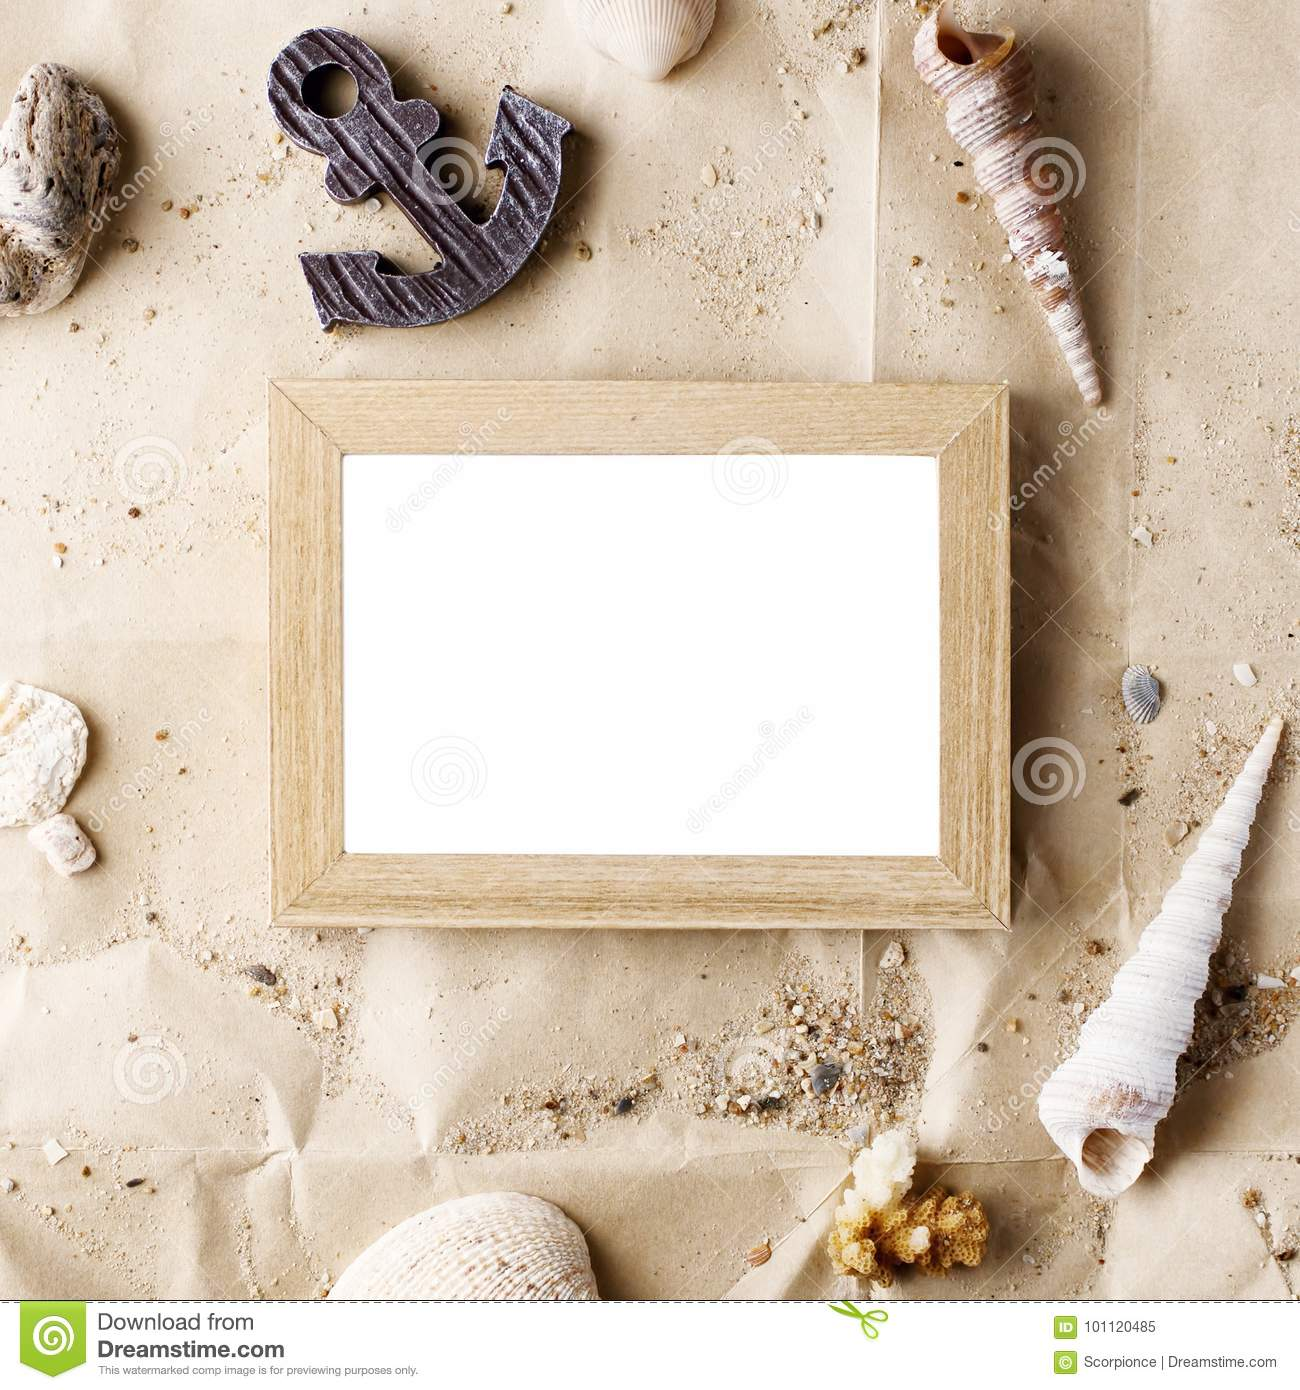 Vintage wooden photo frame on craft paper with sand and sea shells mock up